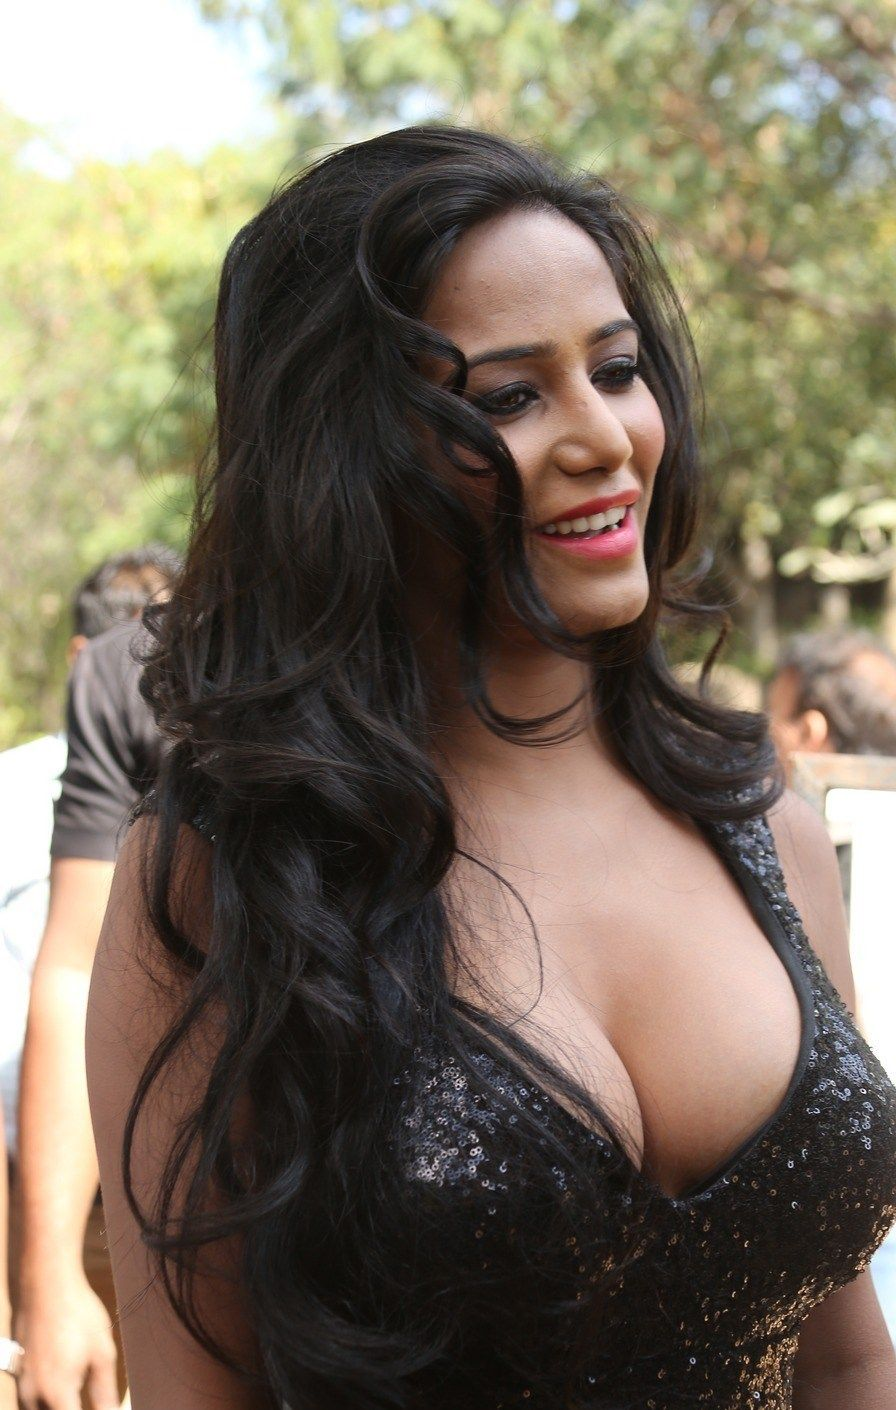 latest poonam pandey photos, poonam pandey stills, hot poonam pandey